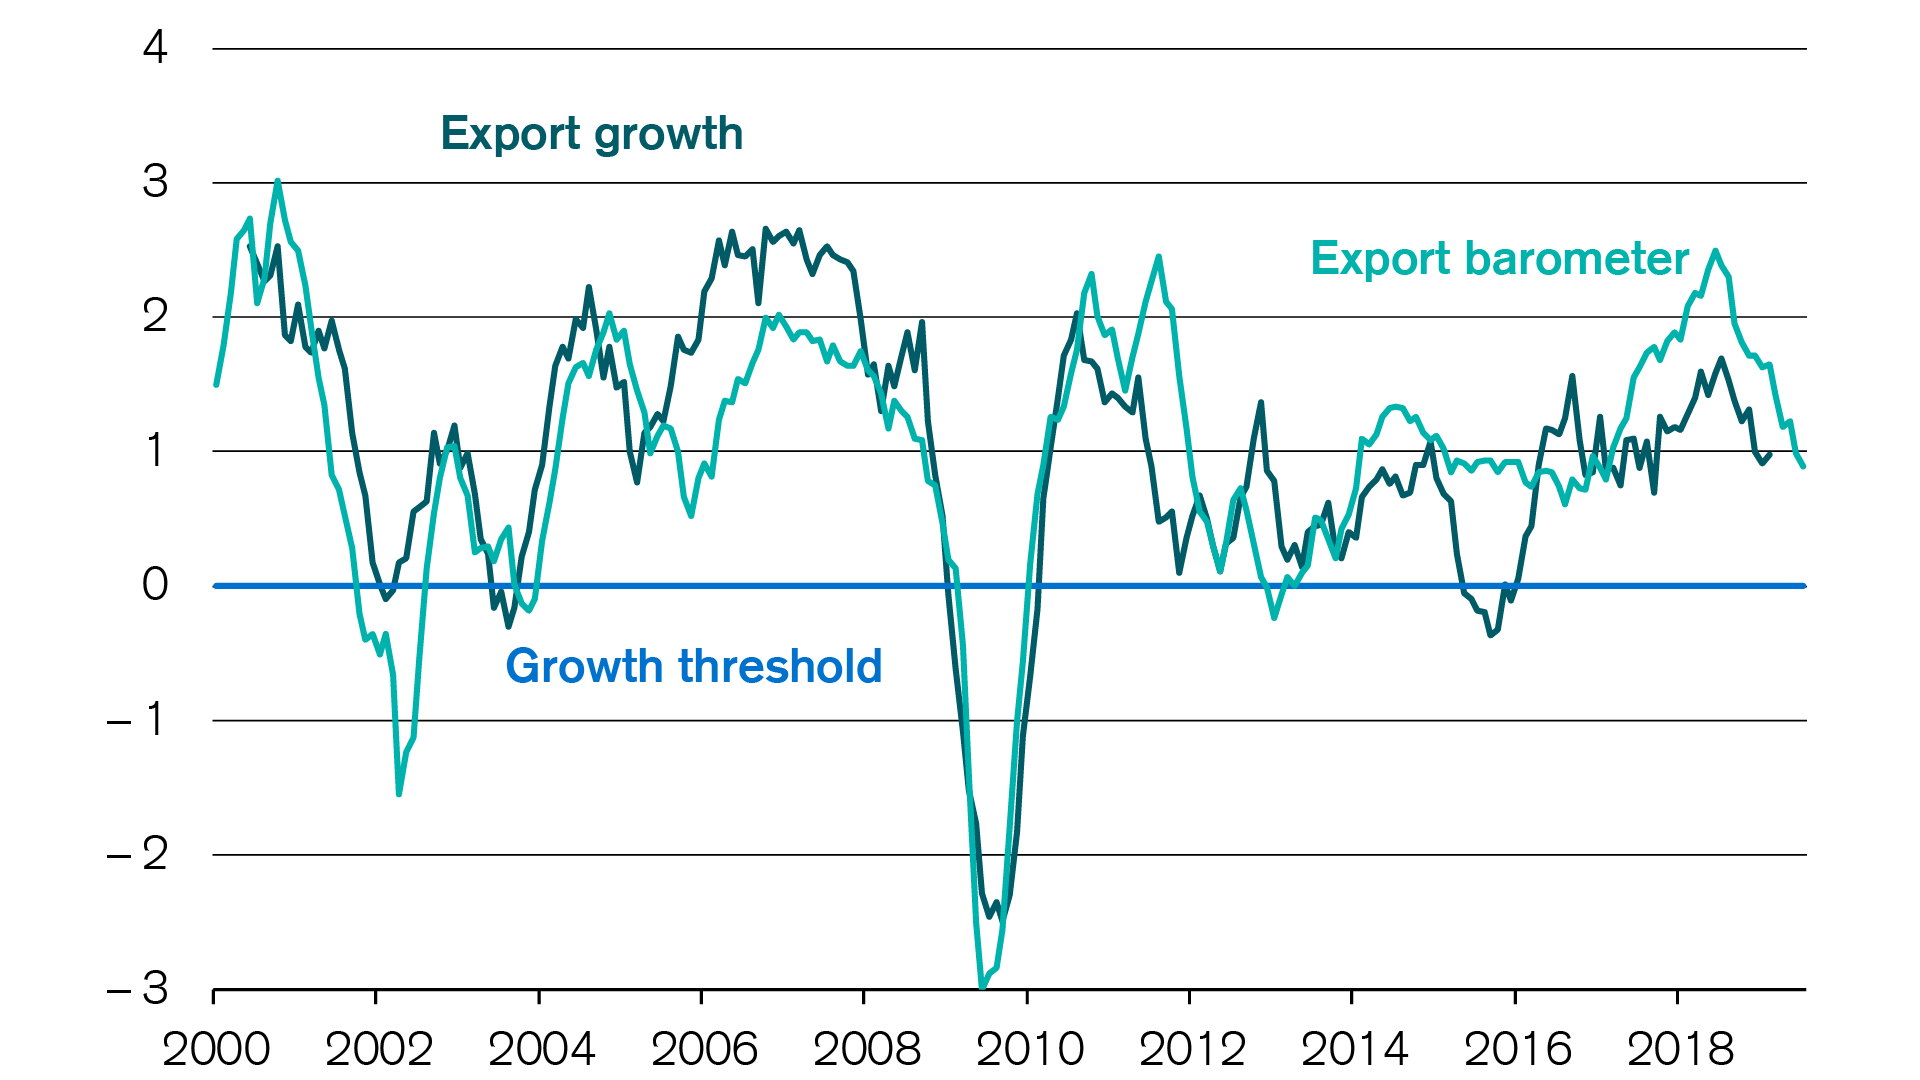 Swiss exports: Credit Suisse export barometer falls slightly